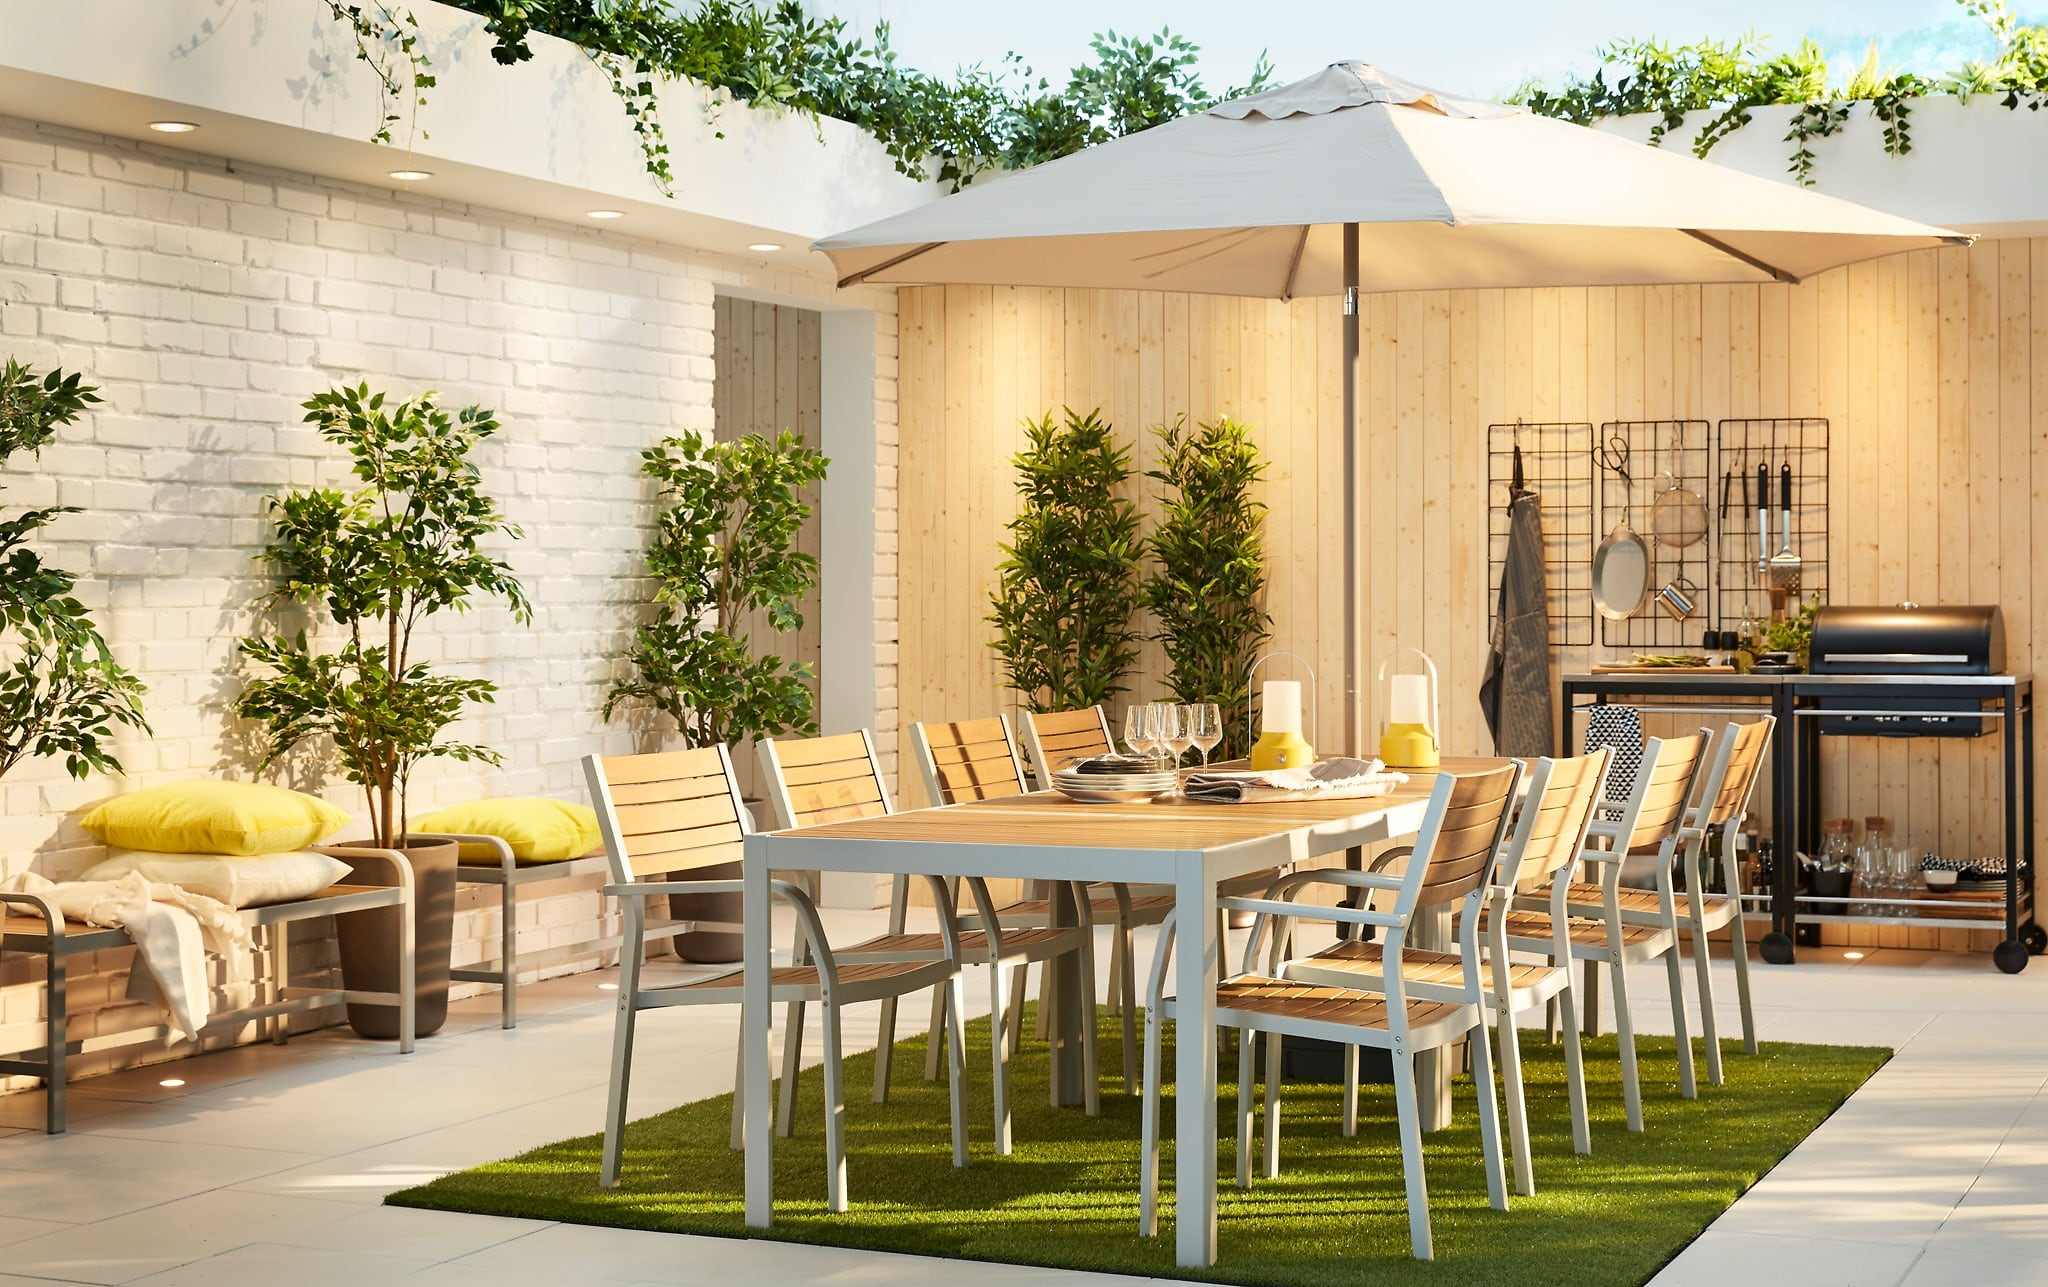 garden furniture outdoor ideas ikea grey light brown sjalland table chairs outdoors accent large modern dining setting with two sets tables and lamps pottery barn wood iron coffee